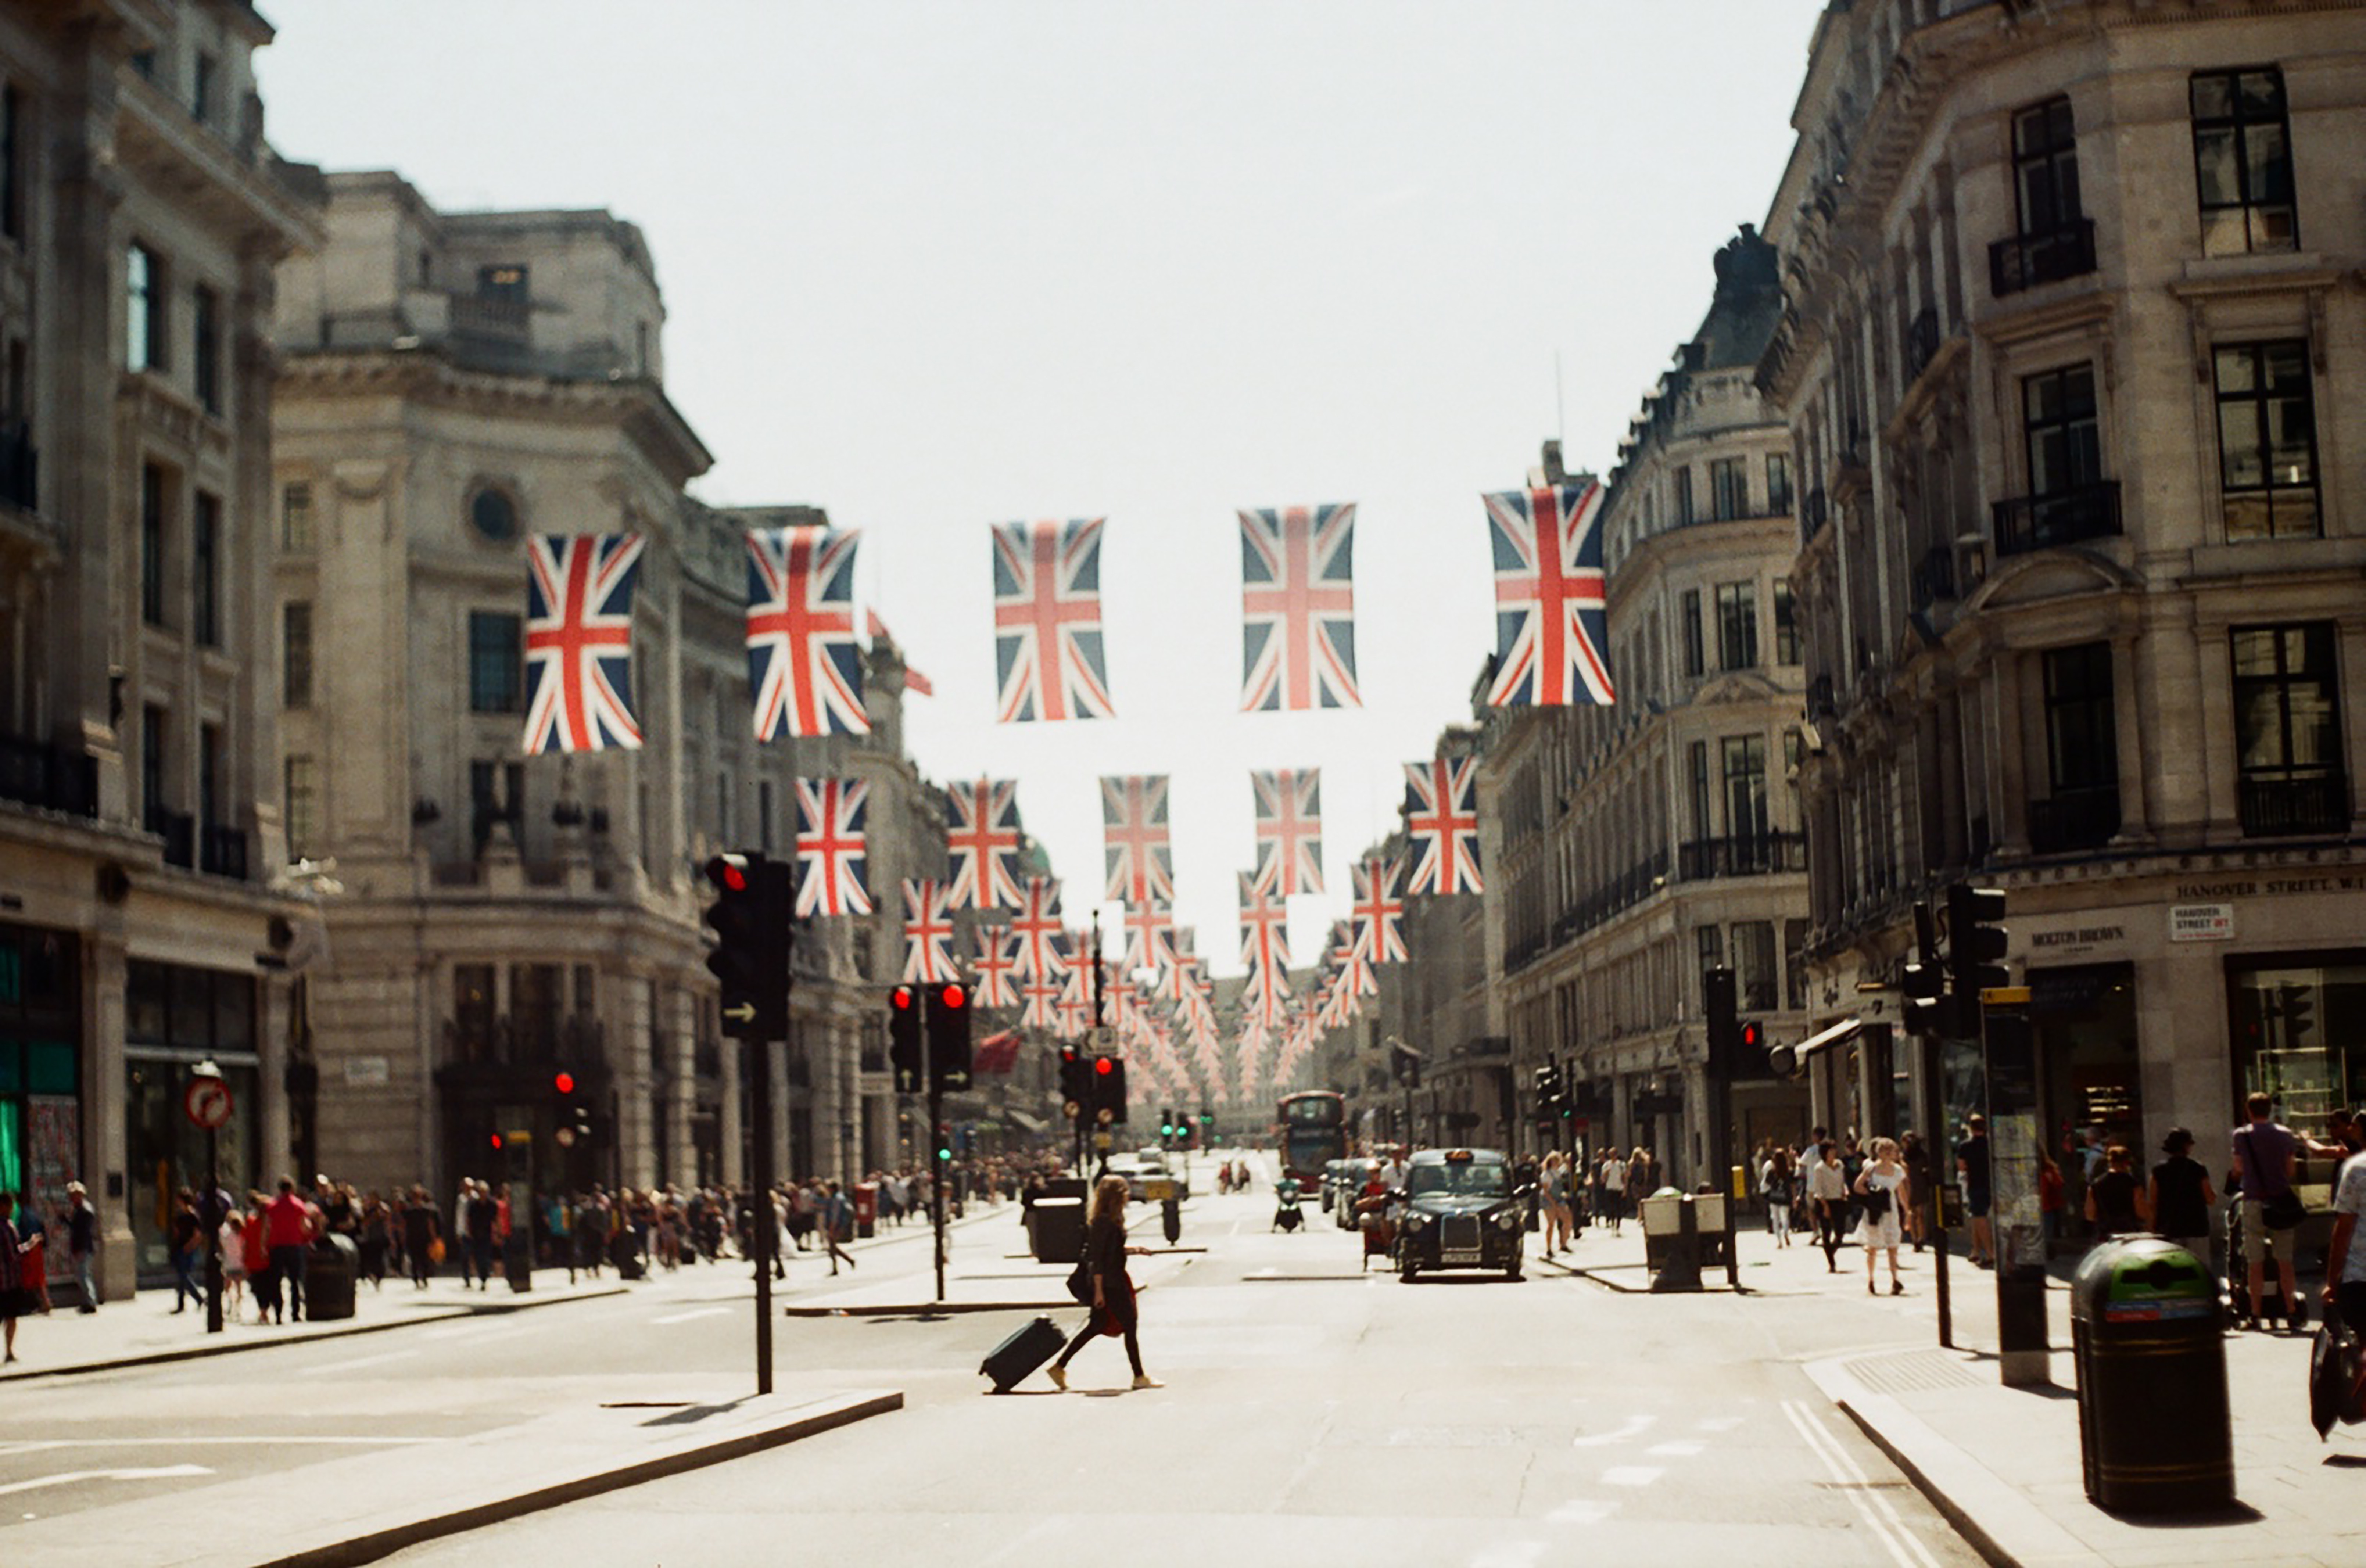 London's Regent Street in summer lined with Union Jack flags